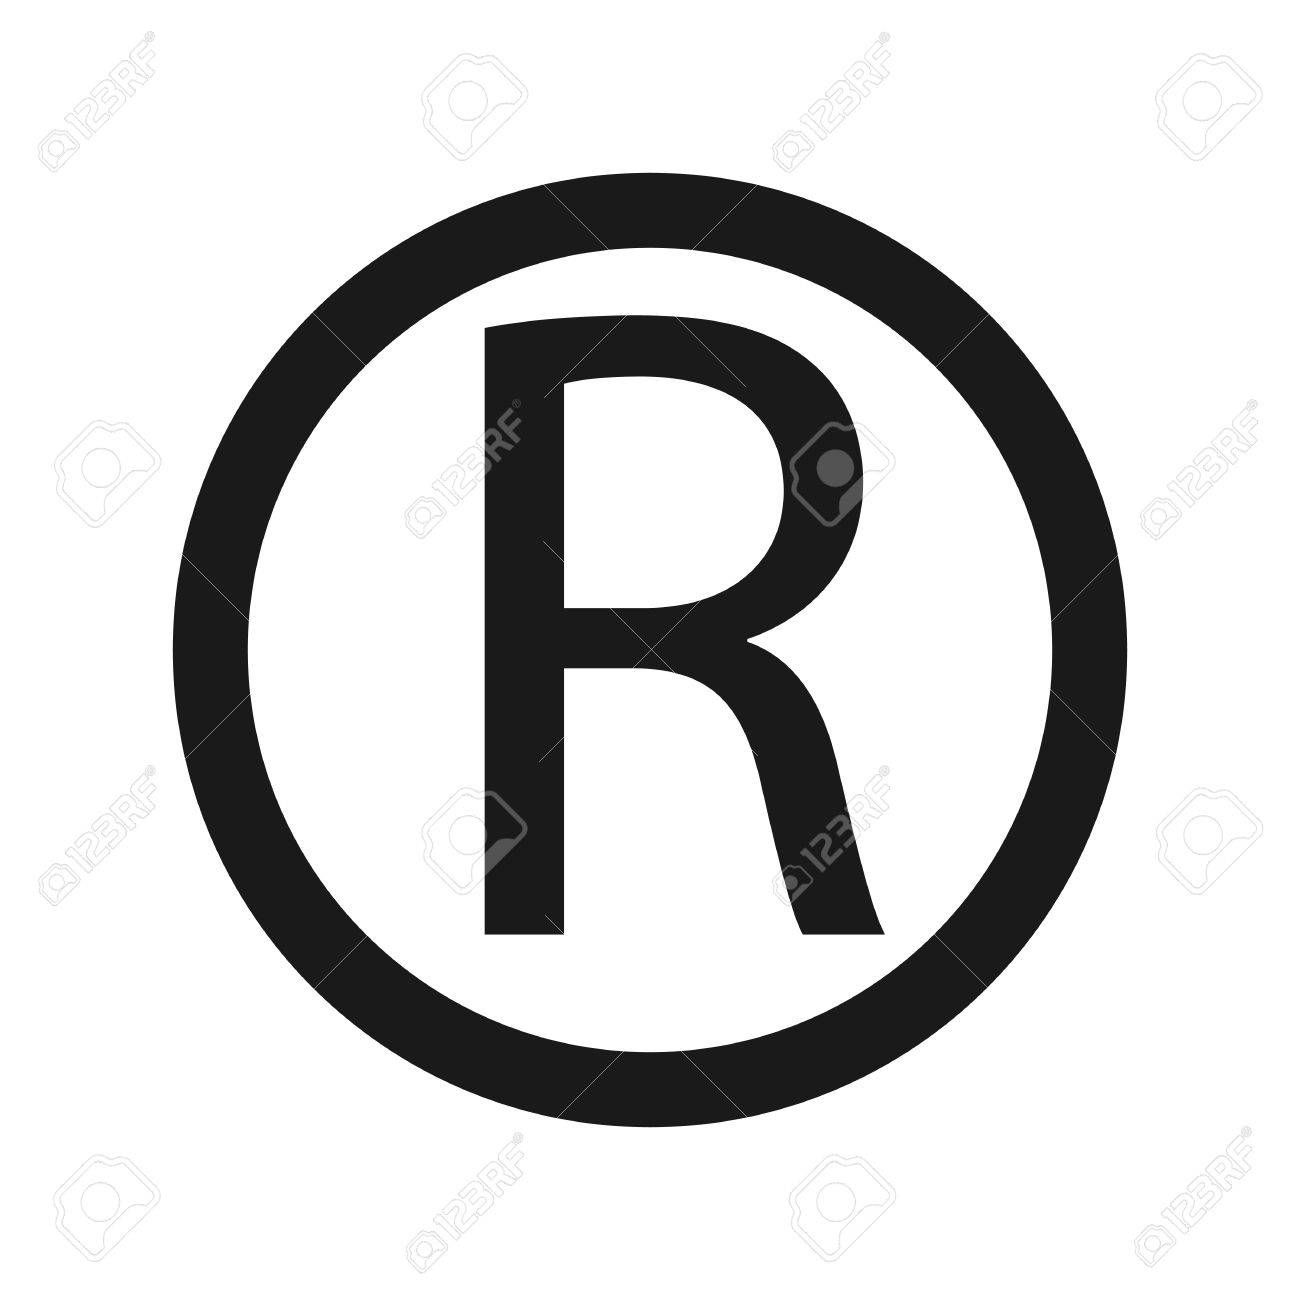 Registered trademark symbol icon letter r royalty free cliparts registered trademark symbol icon letter r stock vector 84873319 biocorpaavc Choice Image